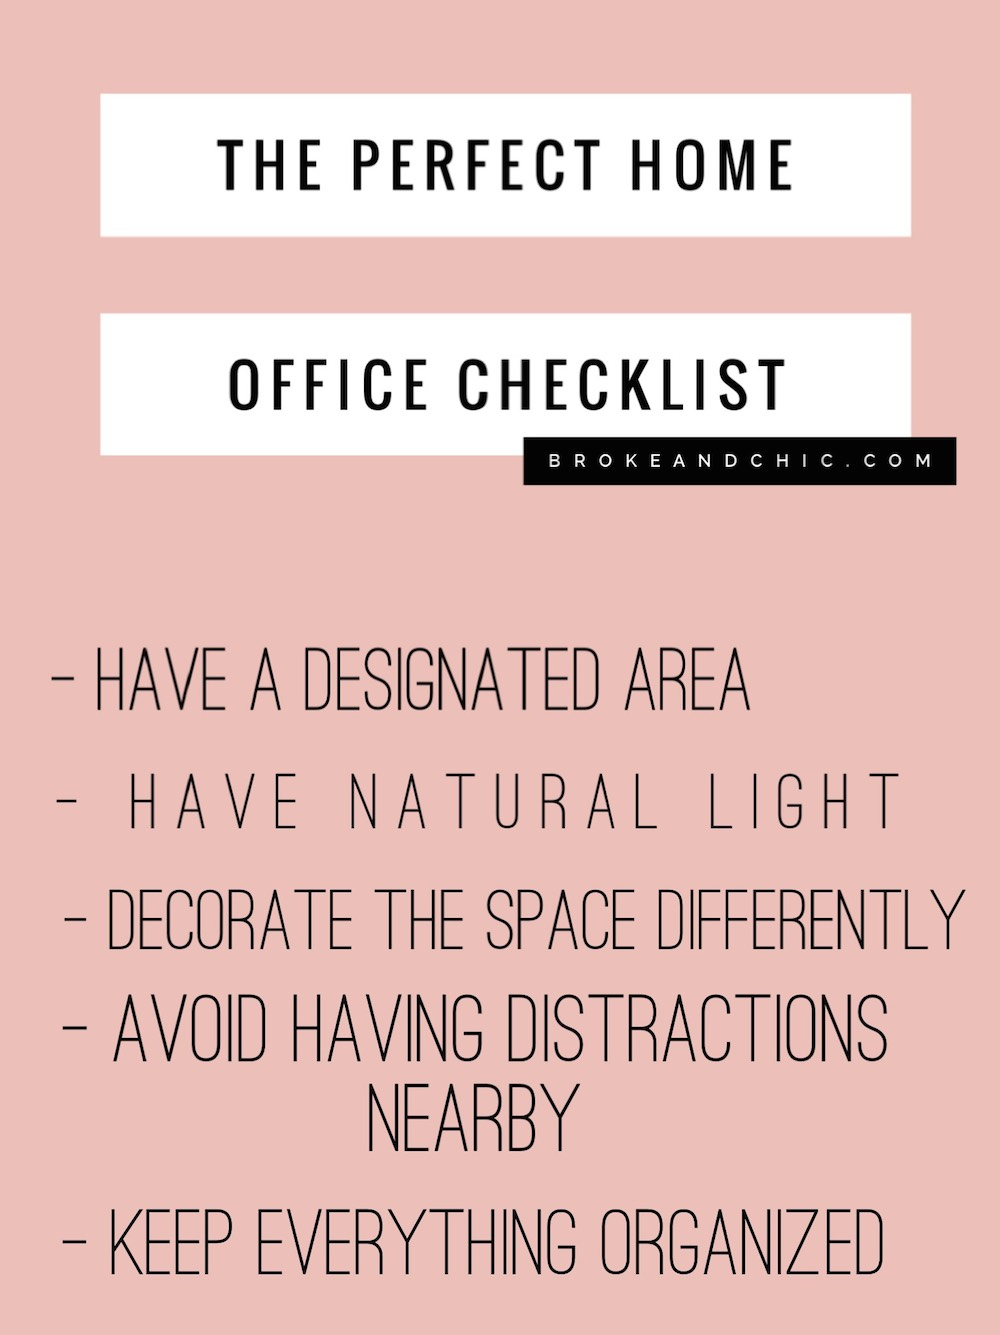 The Perfect Home Office Checklist Brokeandchic